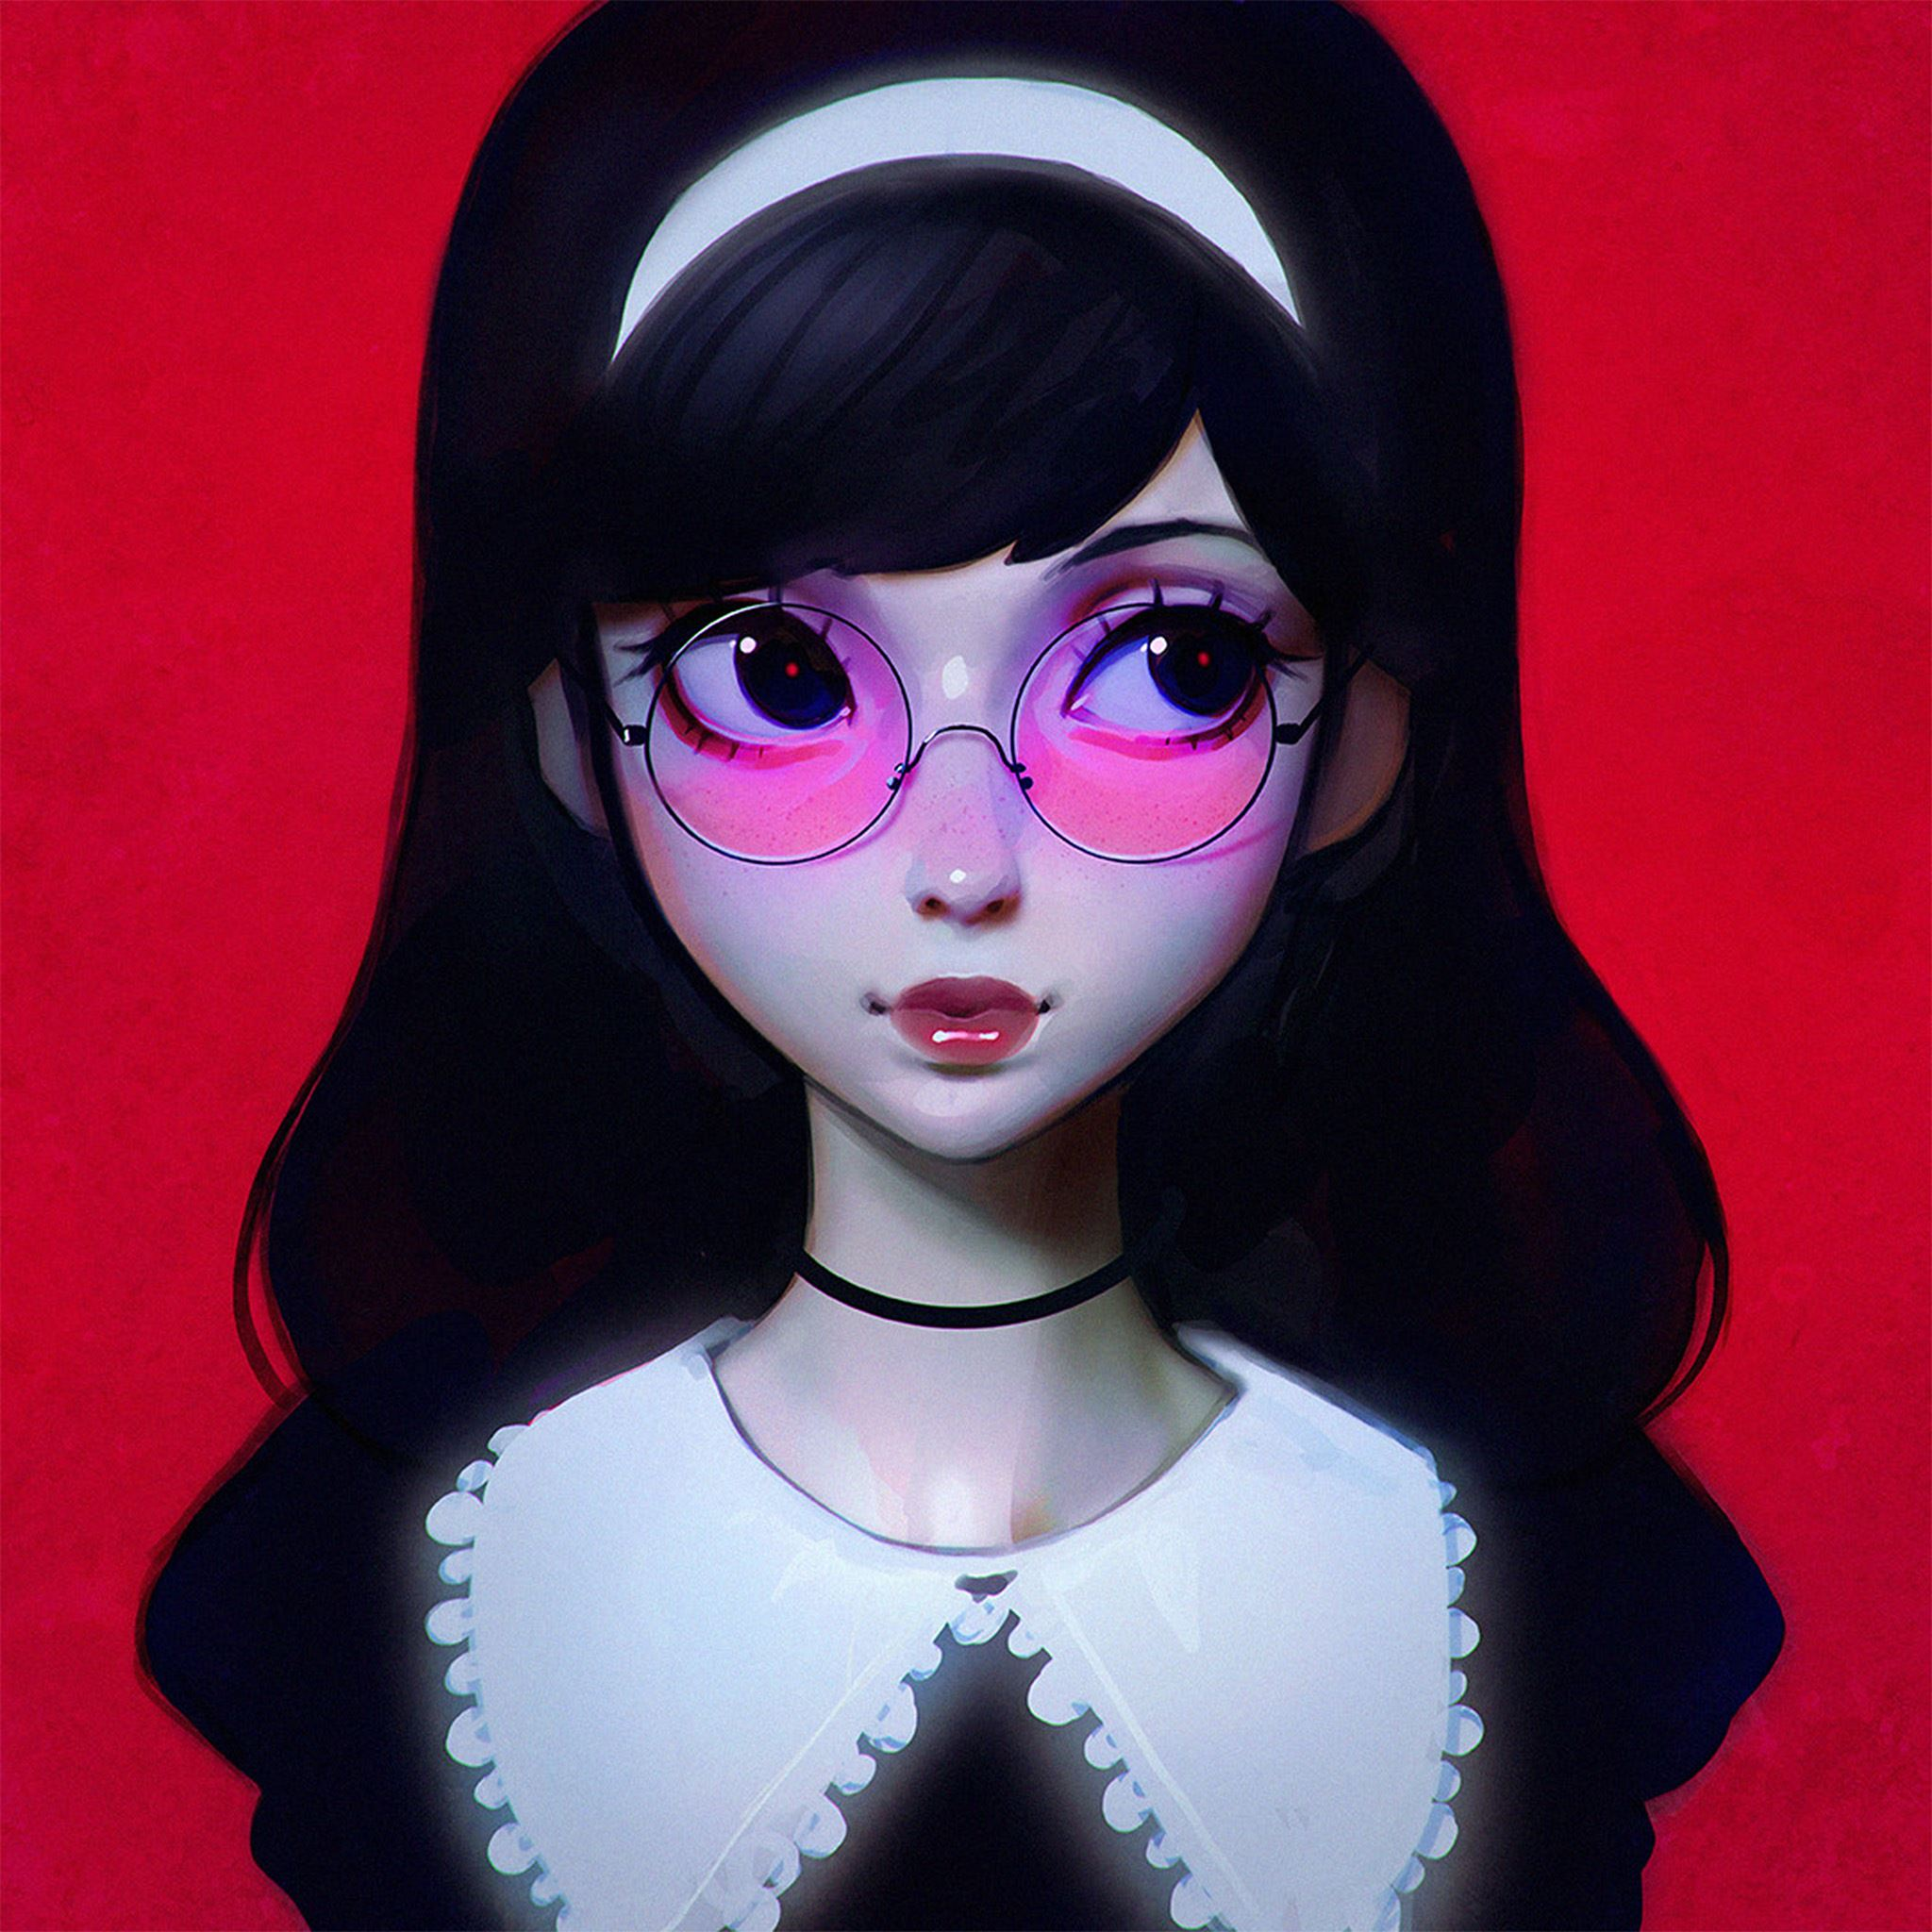 Llya Kuvshinov Red Girl Illustration Art iPad Air wallpaper